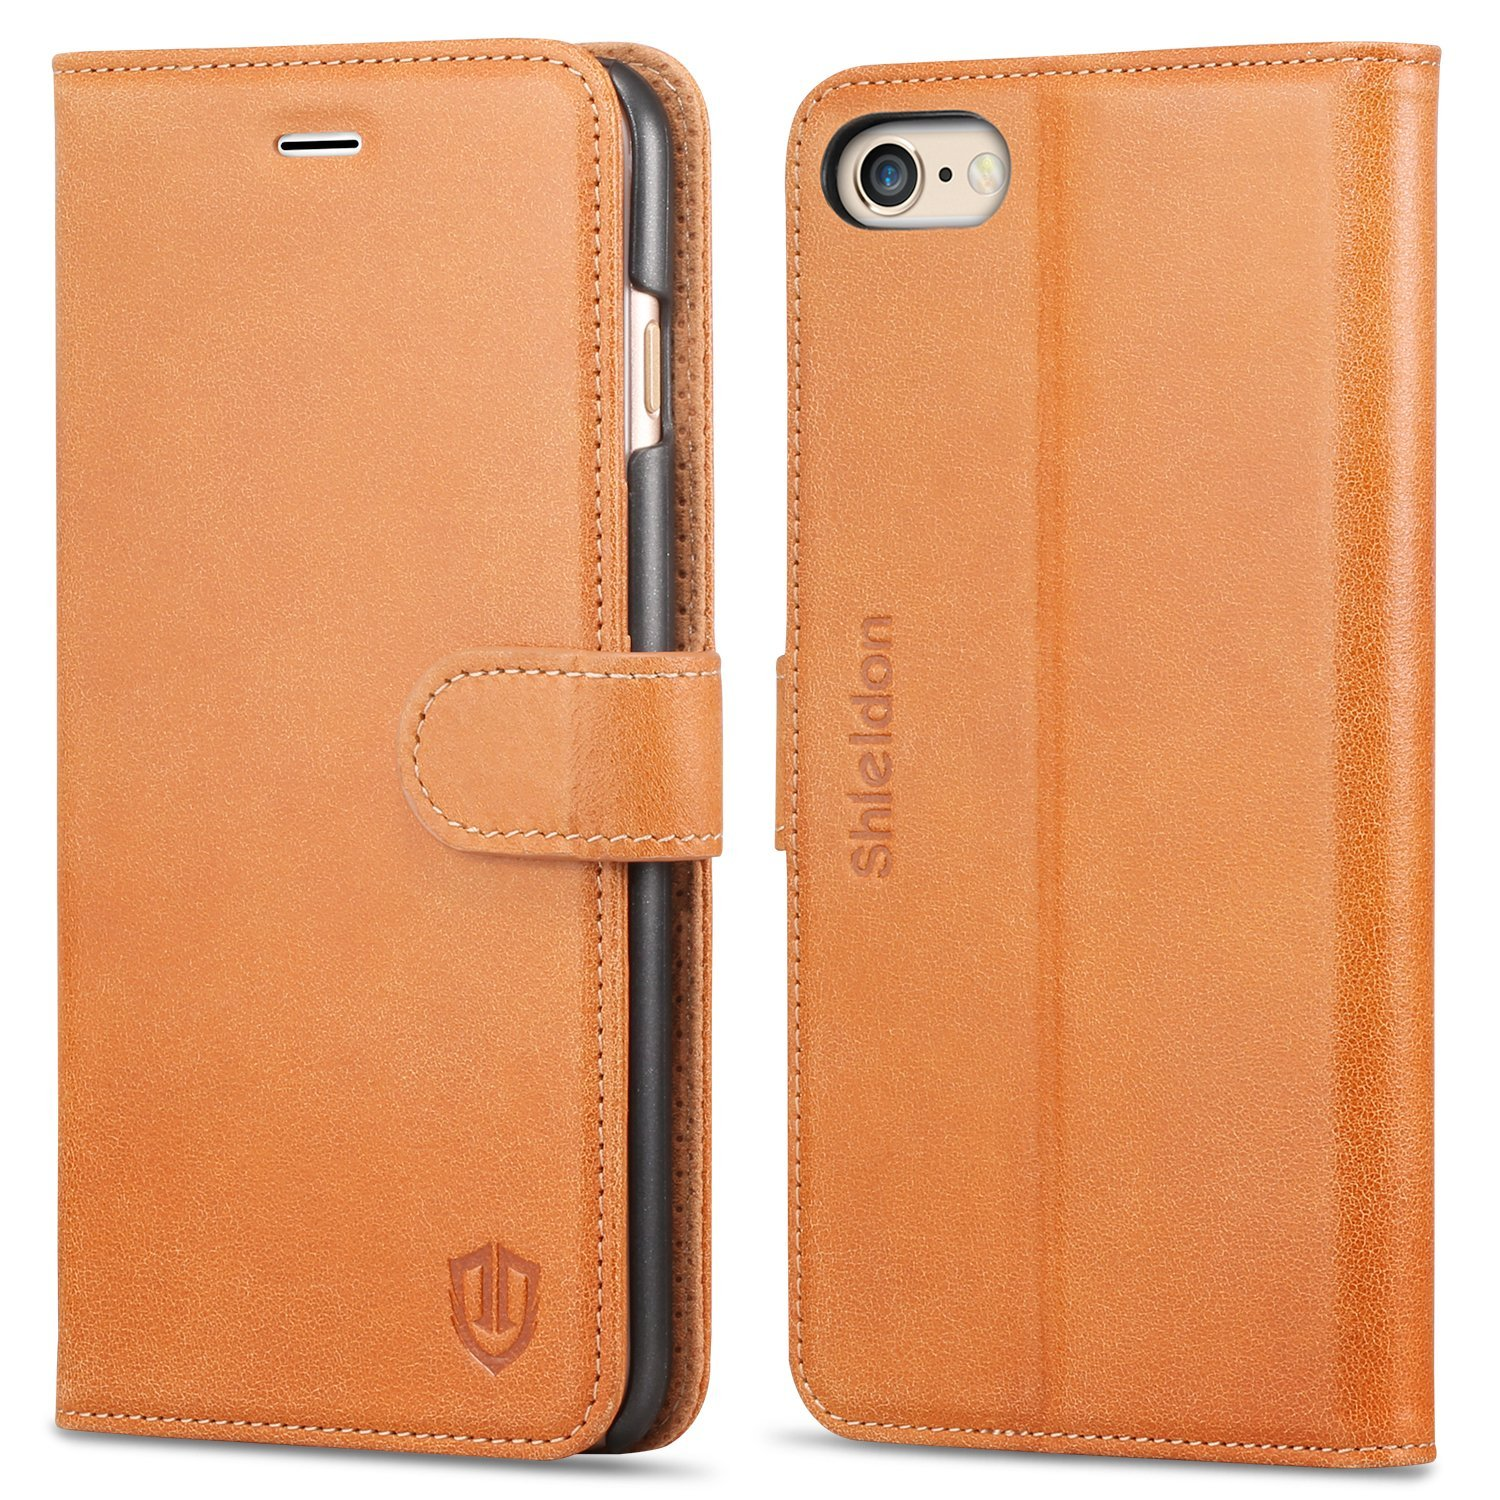 "iPhone 6s Plus Case, iphone 6 Plus Wallet case, SHIELDON Flip Folio [Kickstand Feature] Genuine leather Wallet Case with ID & Credit Card Holder for iPhone 6 Plus / iPhone 6S Plus 5.5"" Brown"